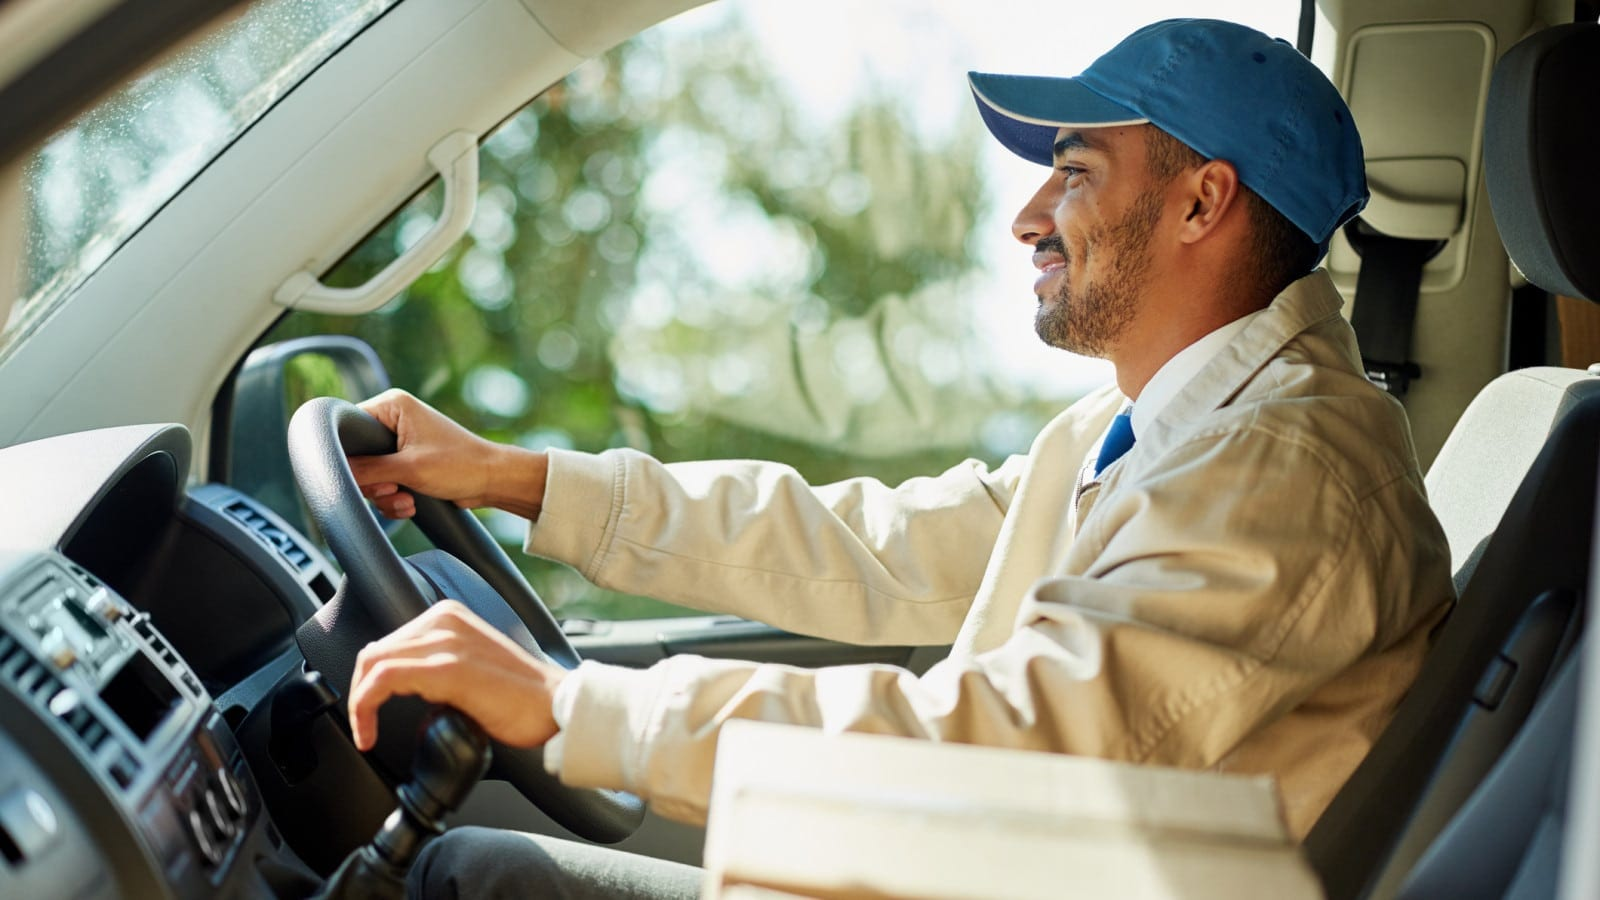 Commercial Delivery Driver Stock Photo